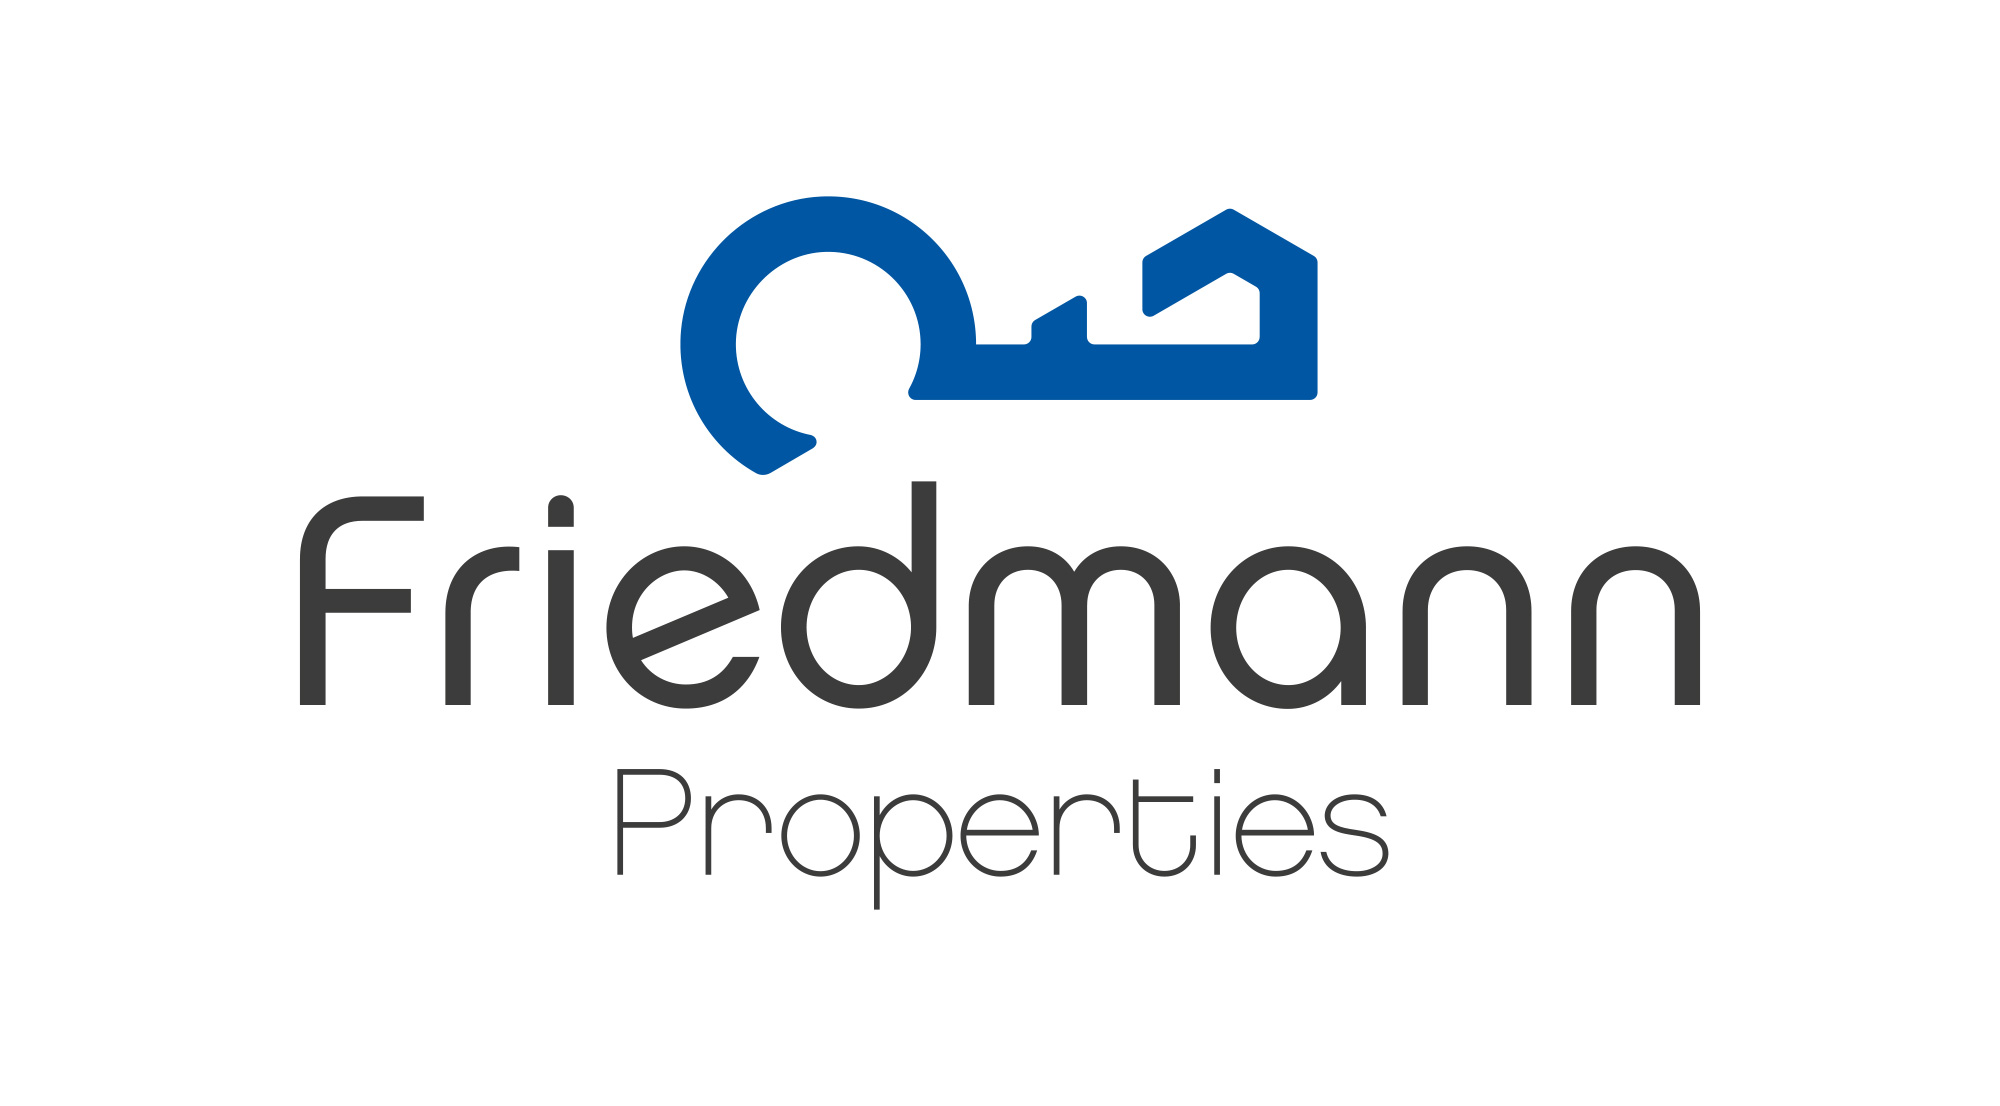 friedmann properties logo